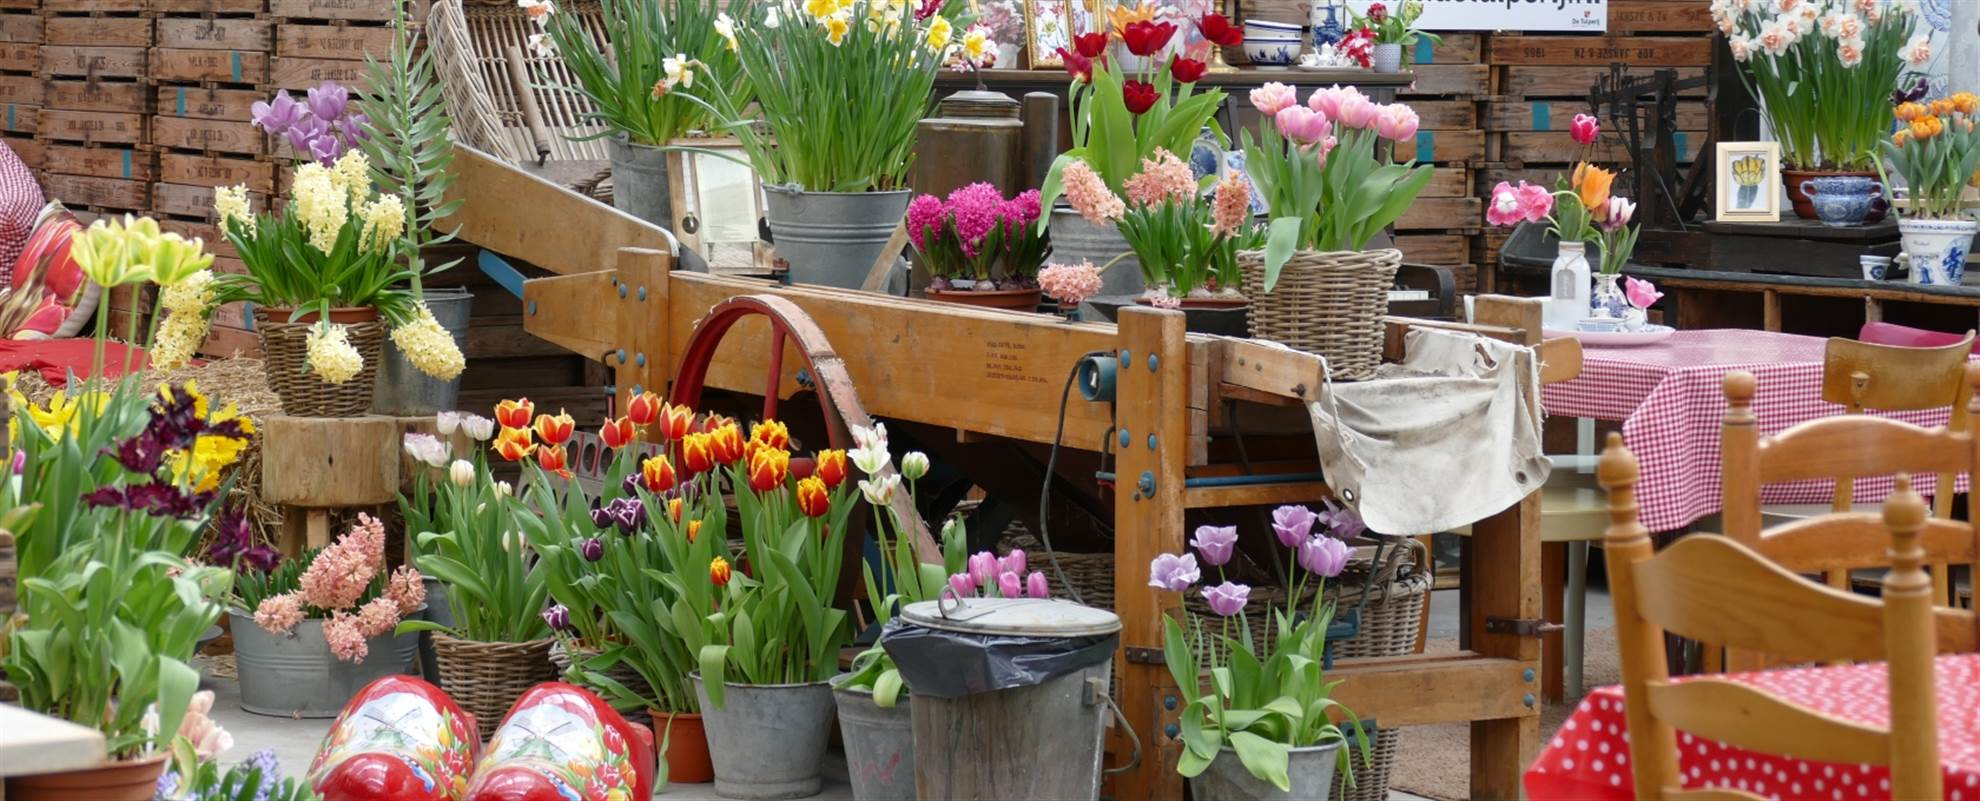 Keukenhof Garden & Flowerfields incl visit to a bulbfarm (Active and bookable)